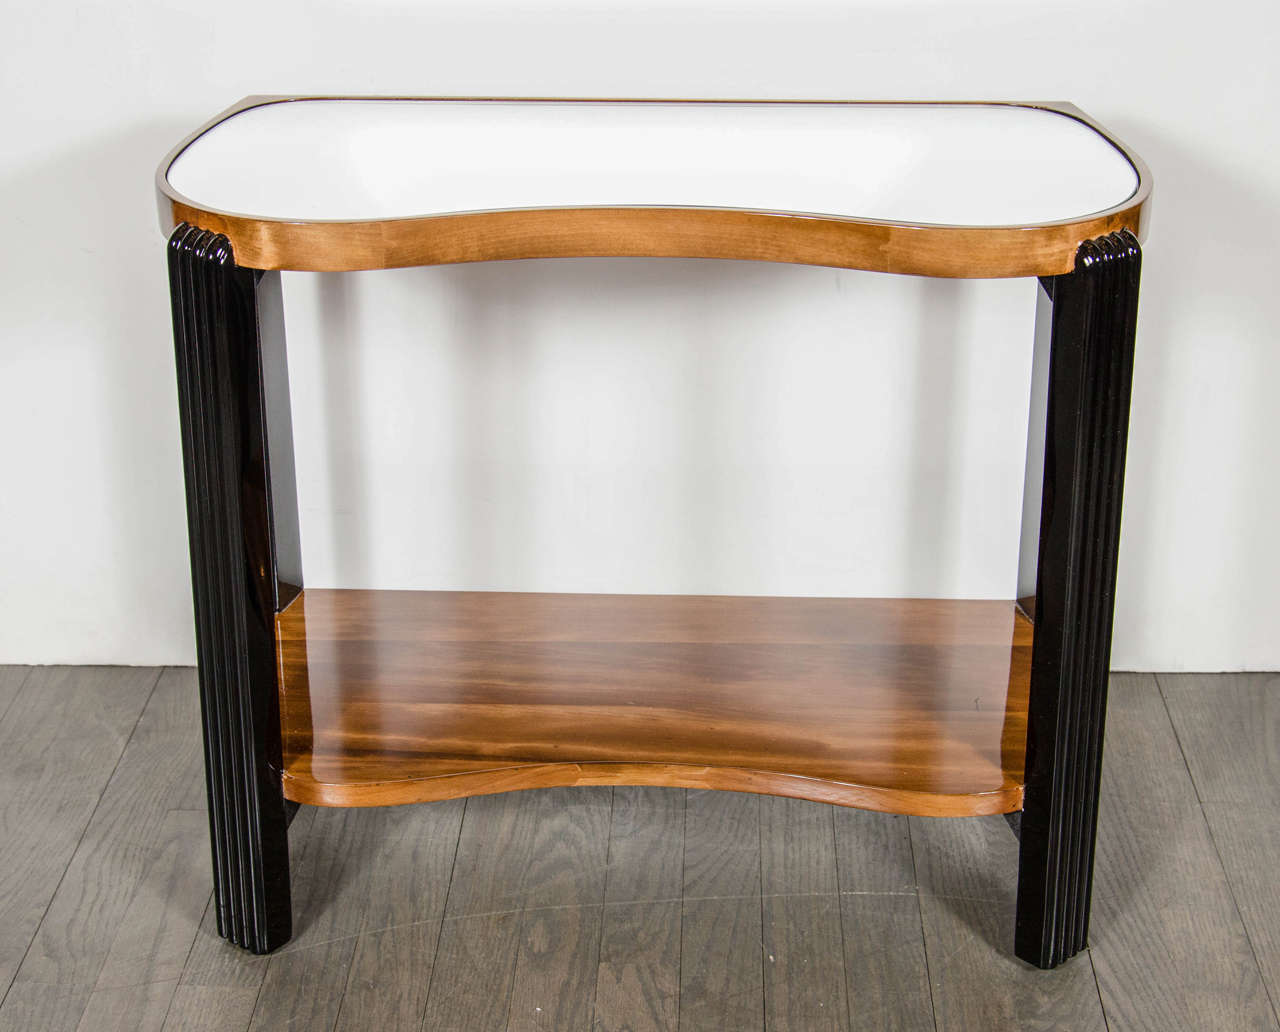 American Art Deco Machine Age Side Table with Streamline Reeded Leg Design For Sale